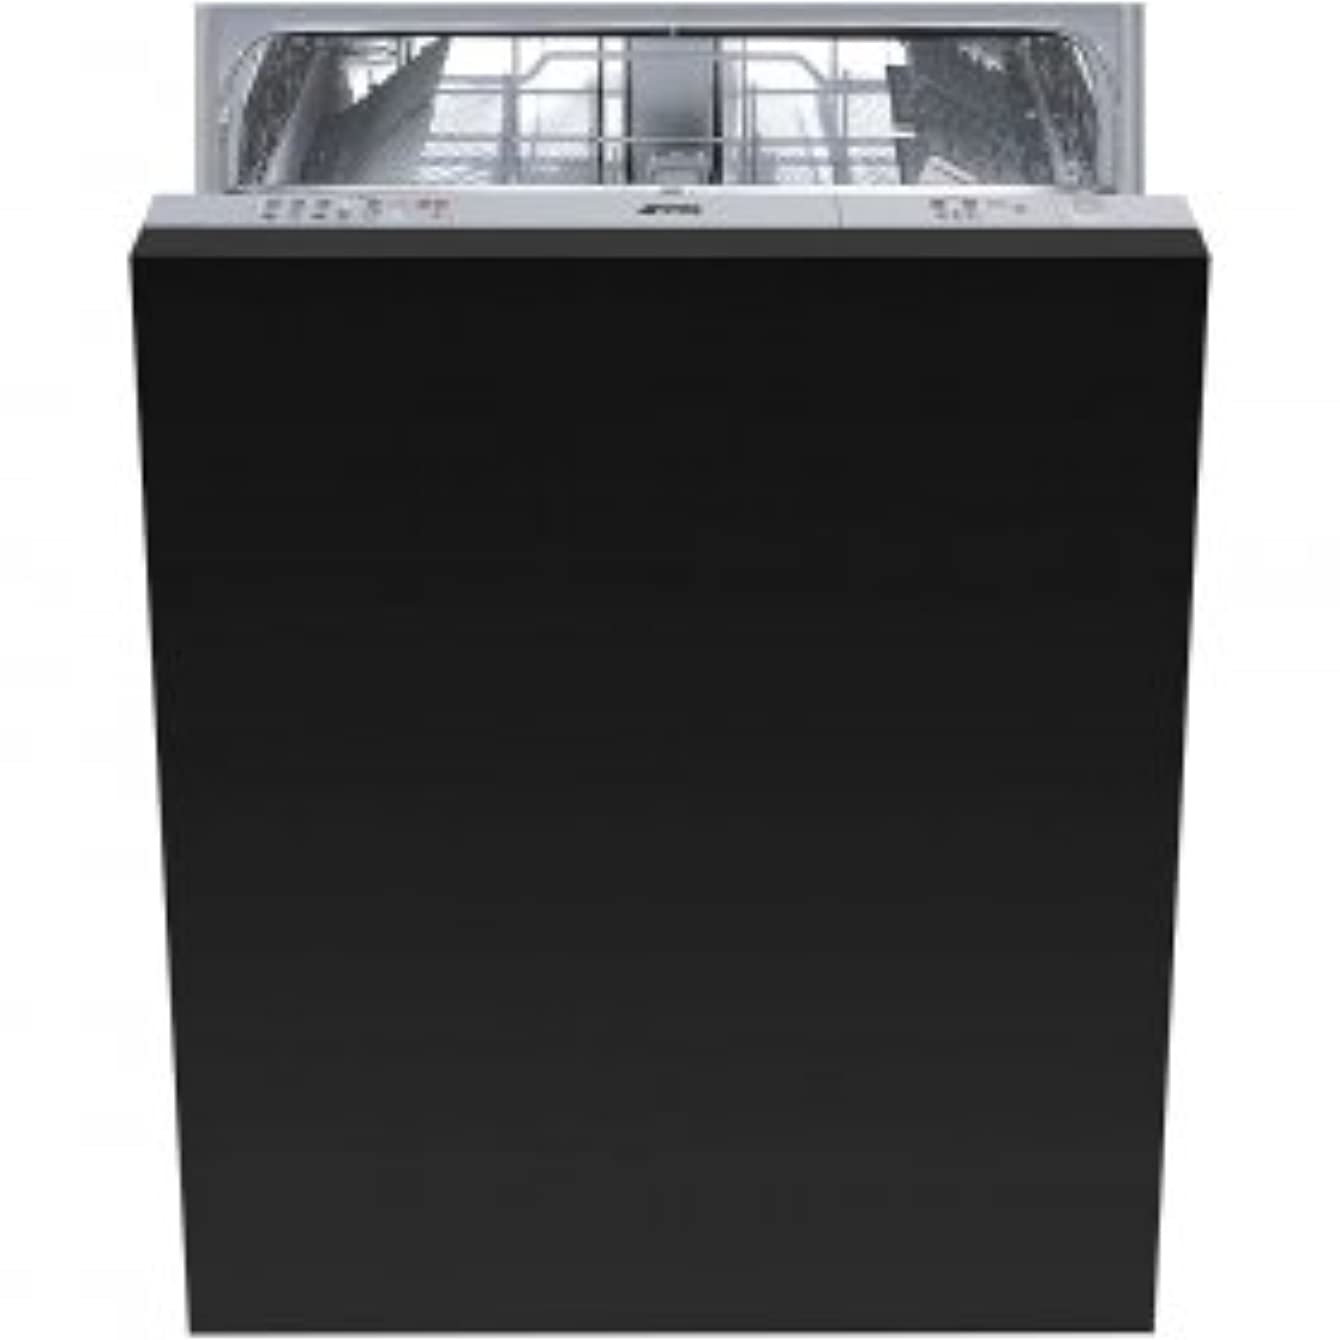 "Smeg 24"" Fully integrated Dishwasher With 13 Place Settings 5 Wash Cycles, Half-Flexible Load, Panel Ready, STU8249"